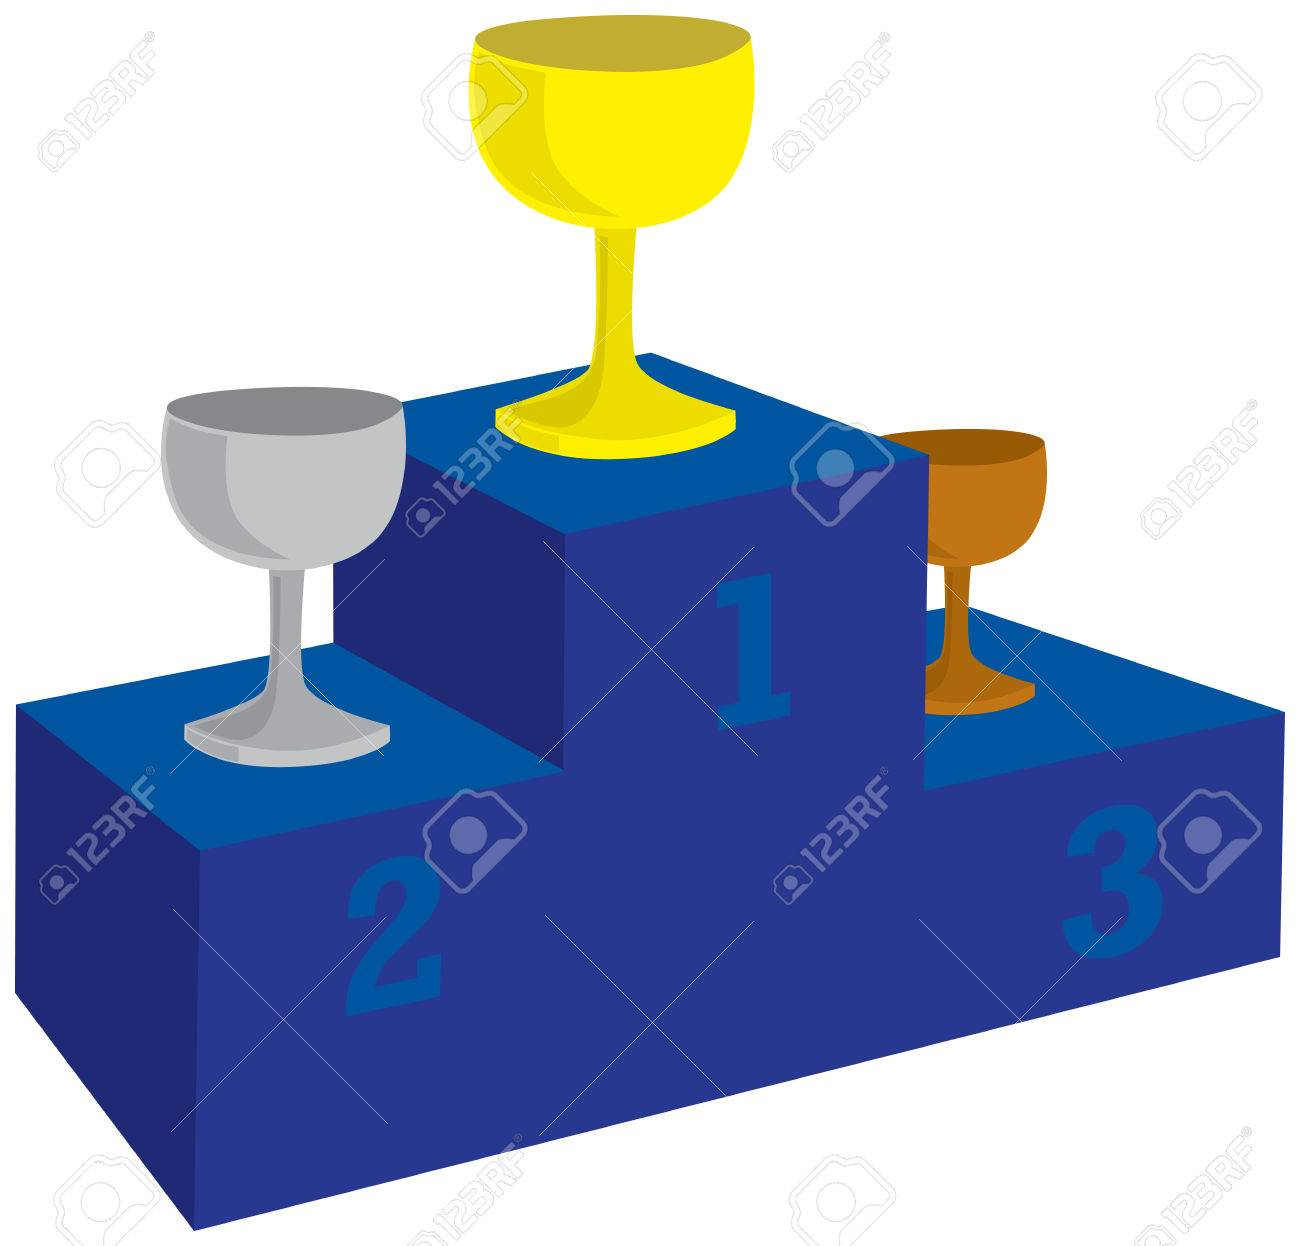 1300x1246 Illustration Of Award Podium With Prizes Royalty Free Cliparts